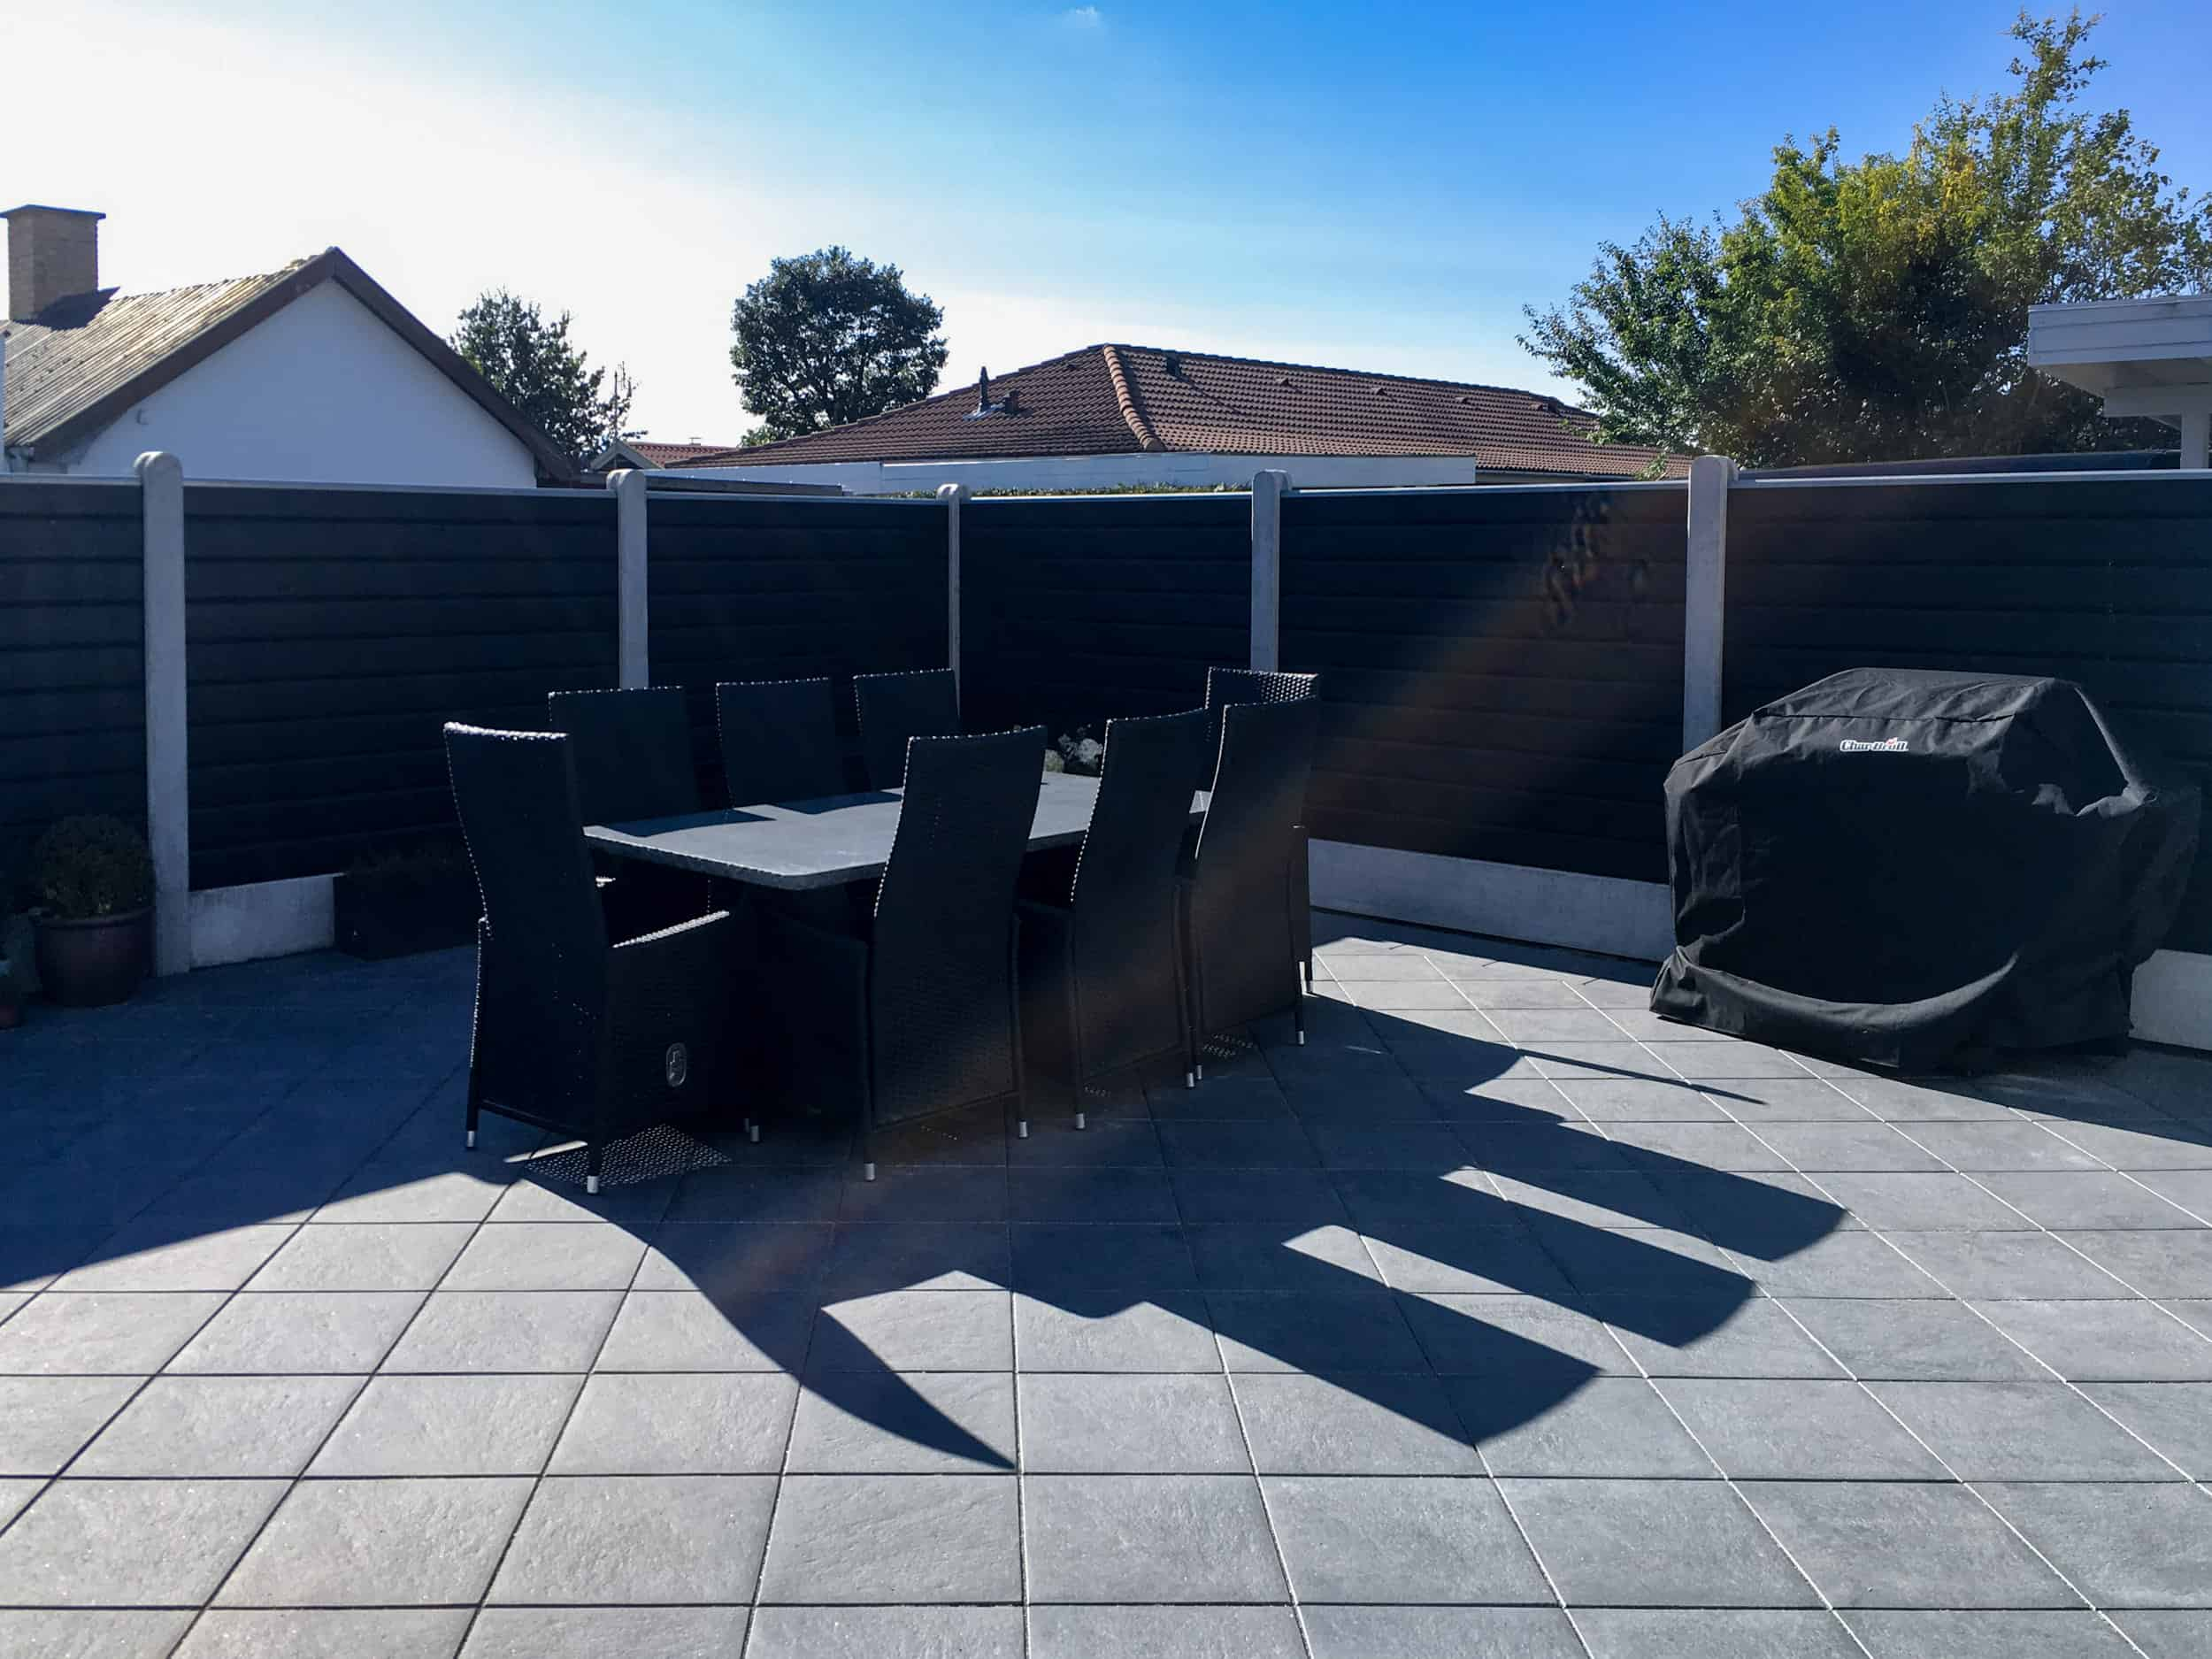 Xl Fence Wood Black Paint Doubleclink In A Garden Xl Fence Future Fencing